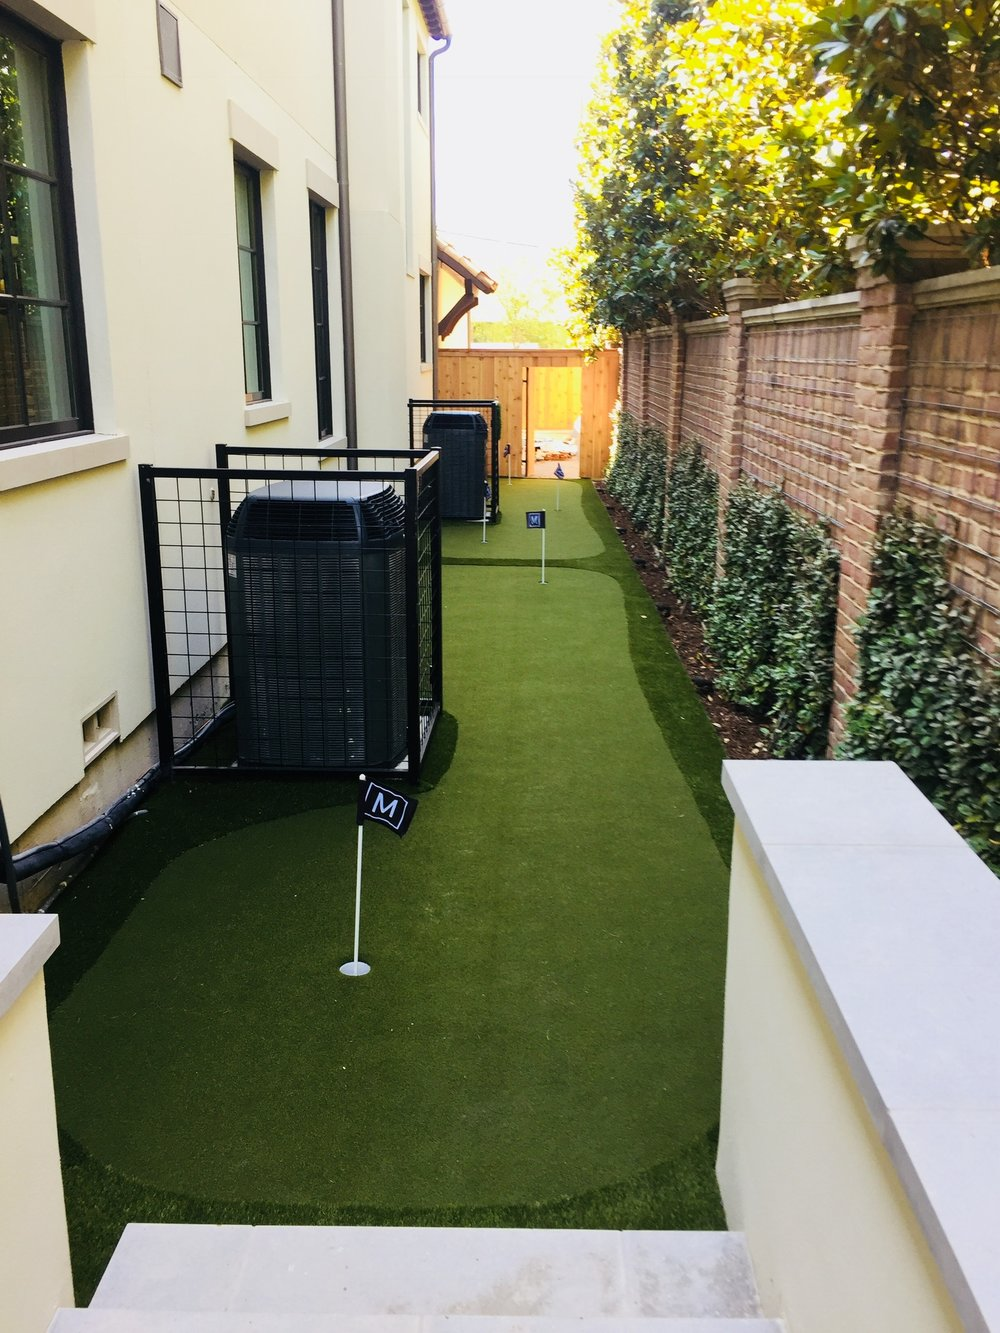 True Putt putting green